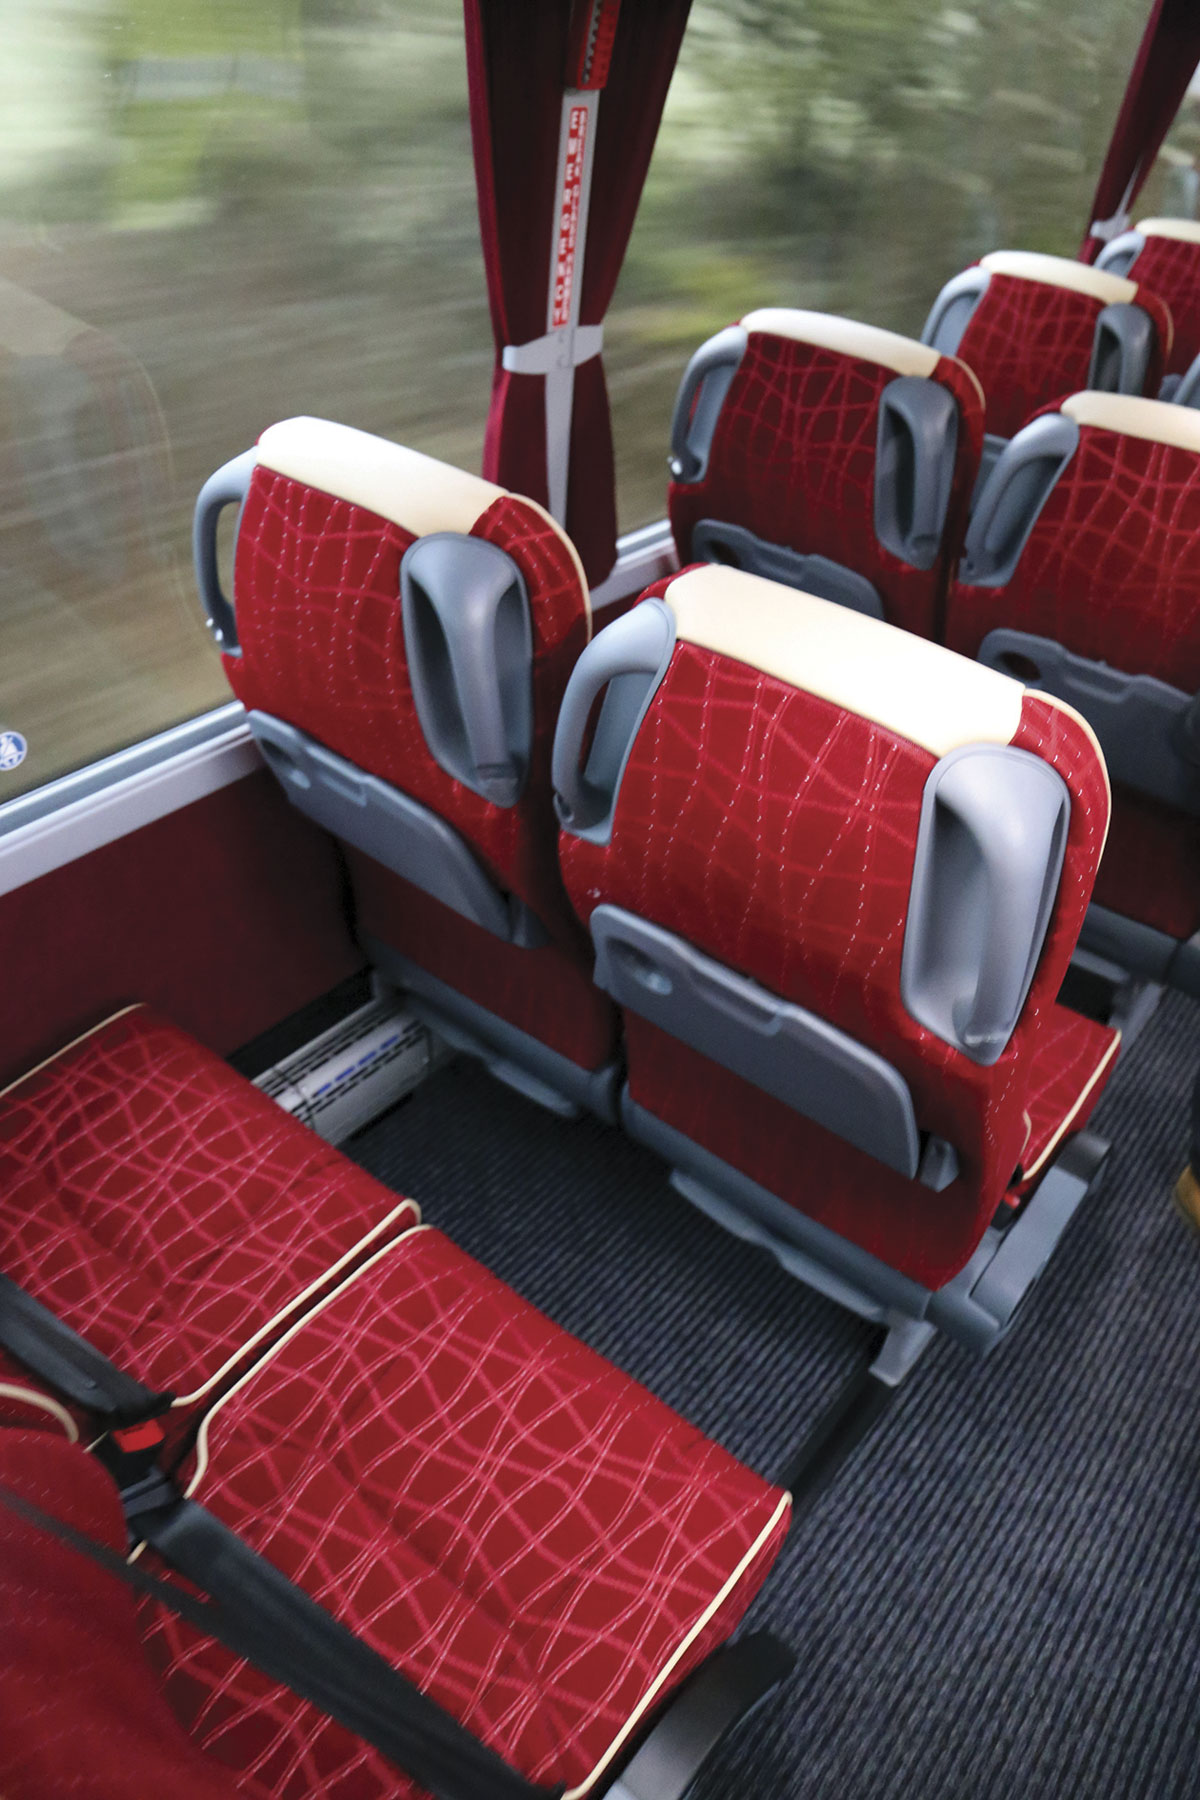 Pulhams specified seatback folding tables. Operators carrying a lot of children can specify half plastic seat backs